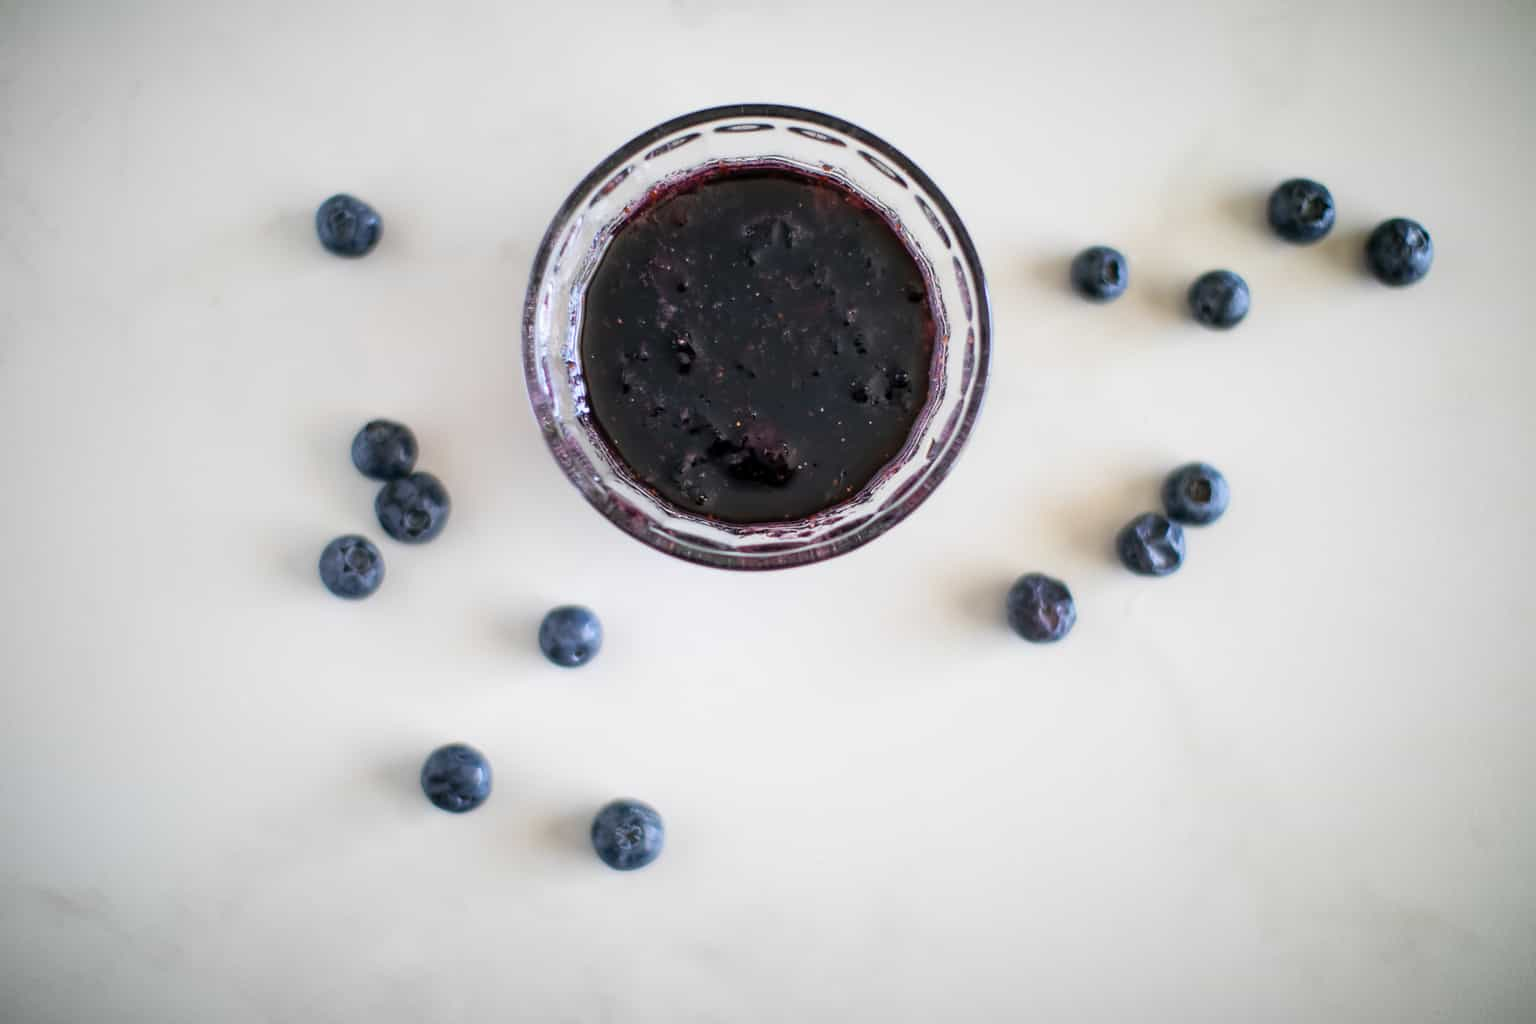 Prepared blueberry syrup in a clear bowl